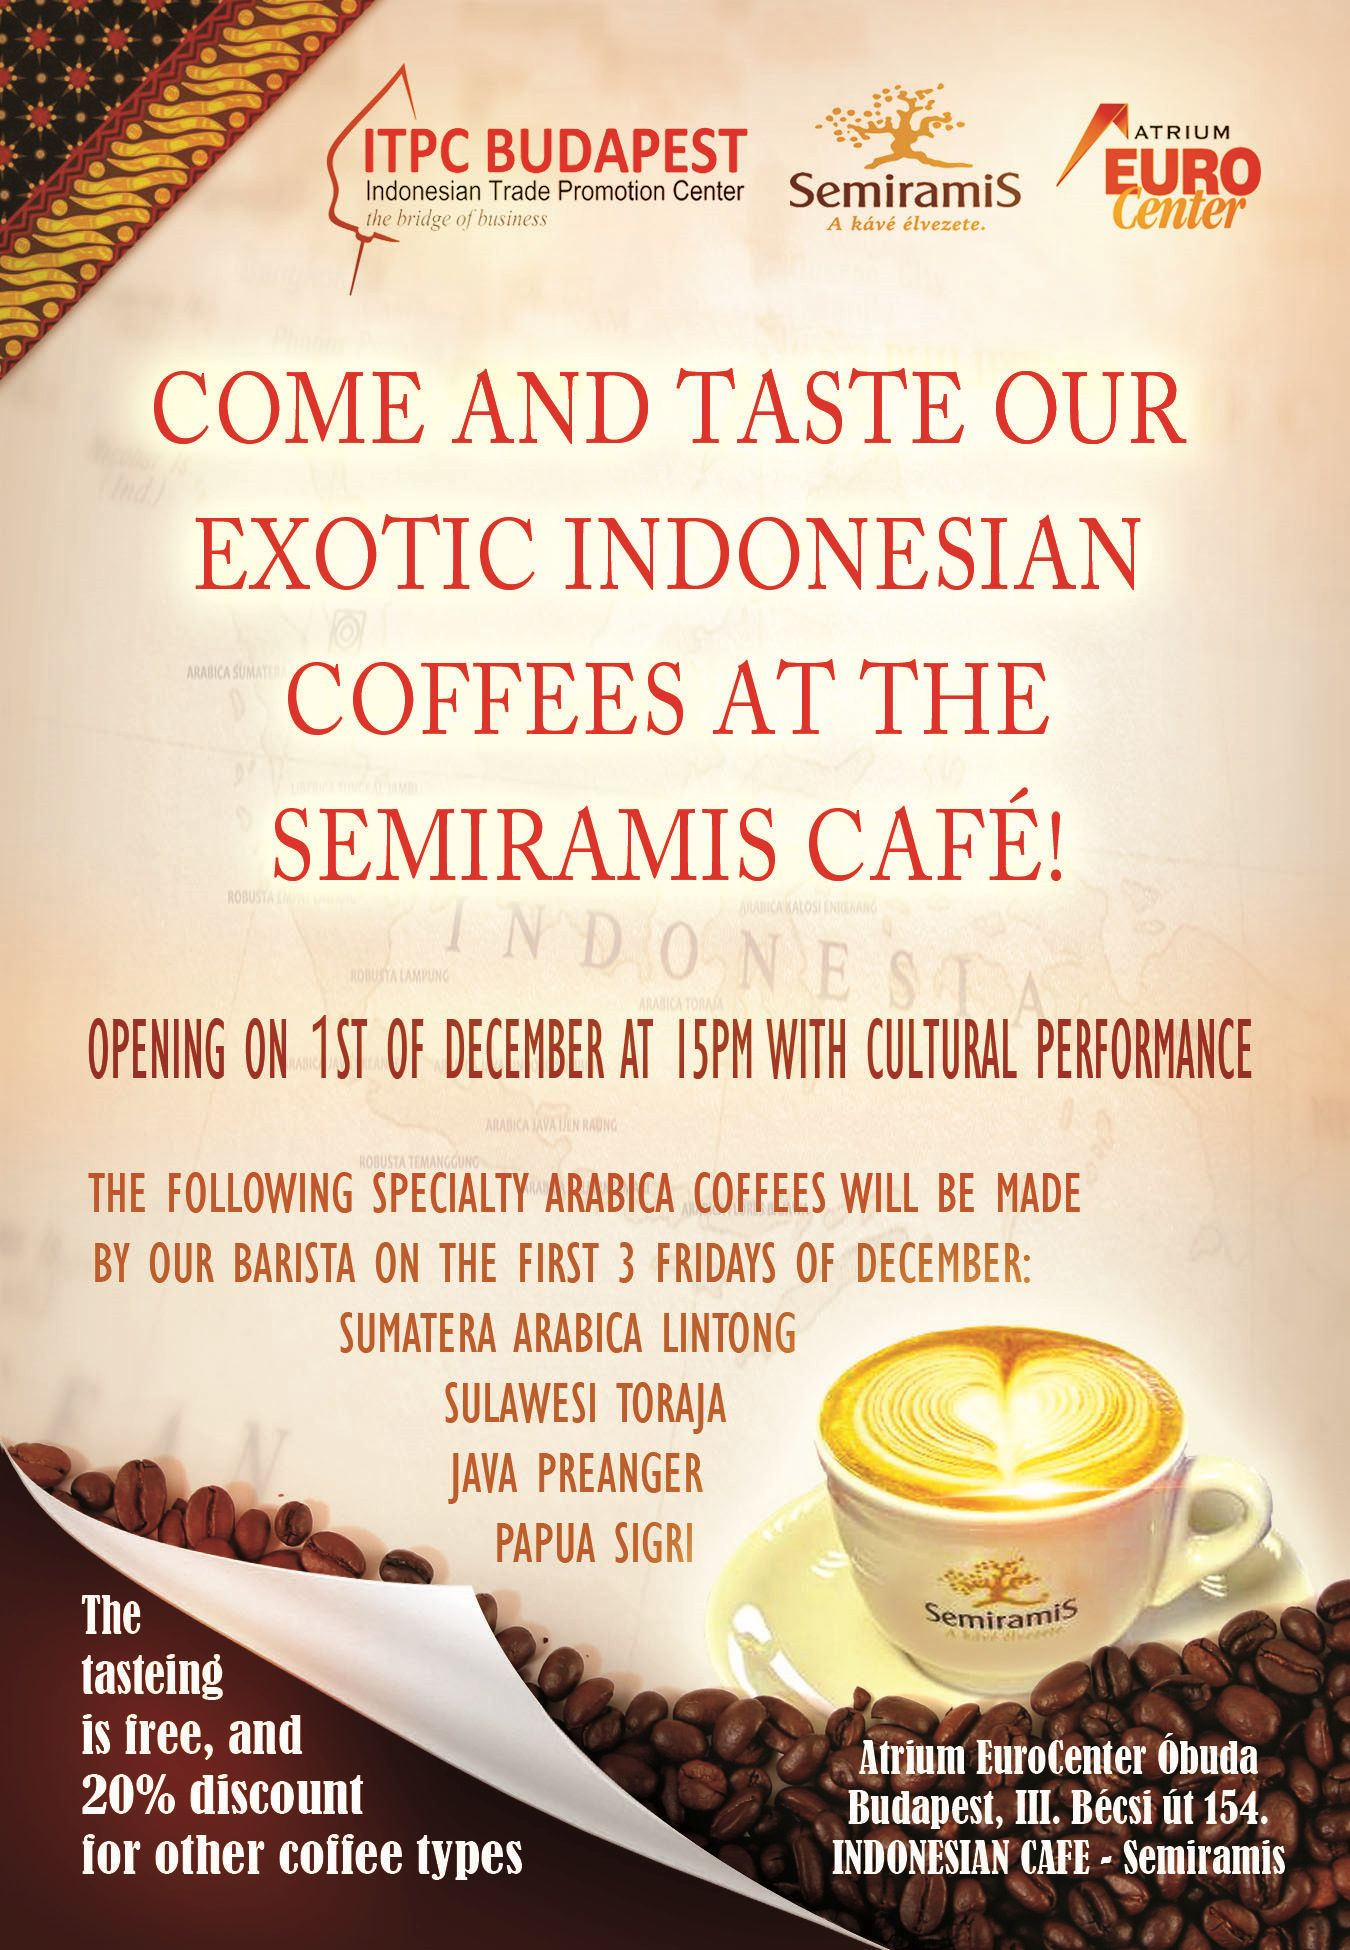 Indonesian Cafe in the Eurocenter